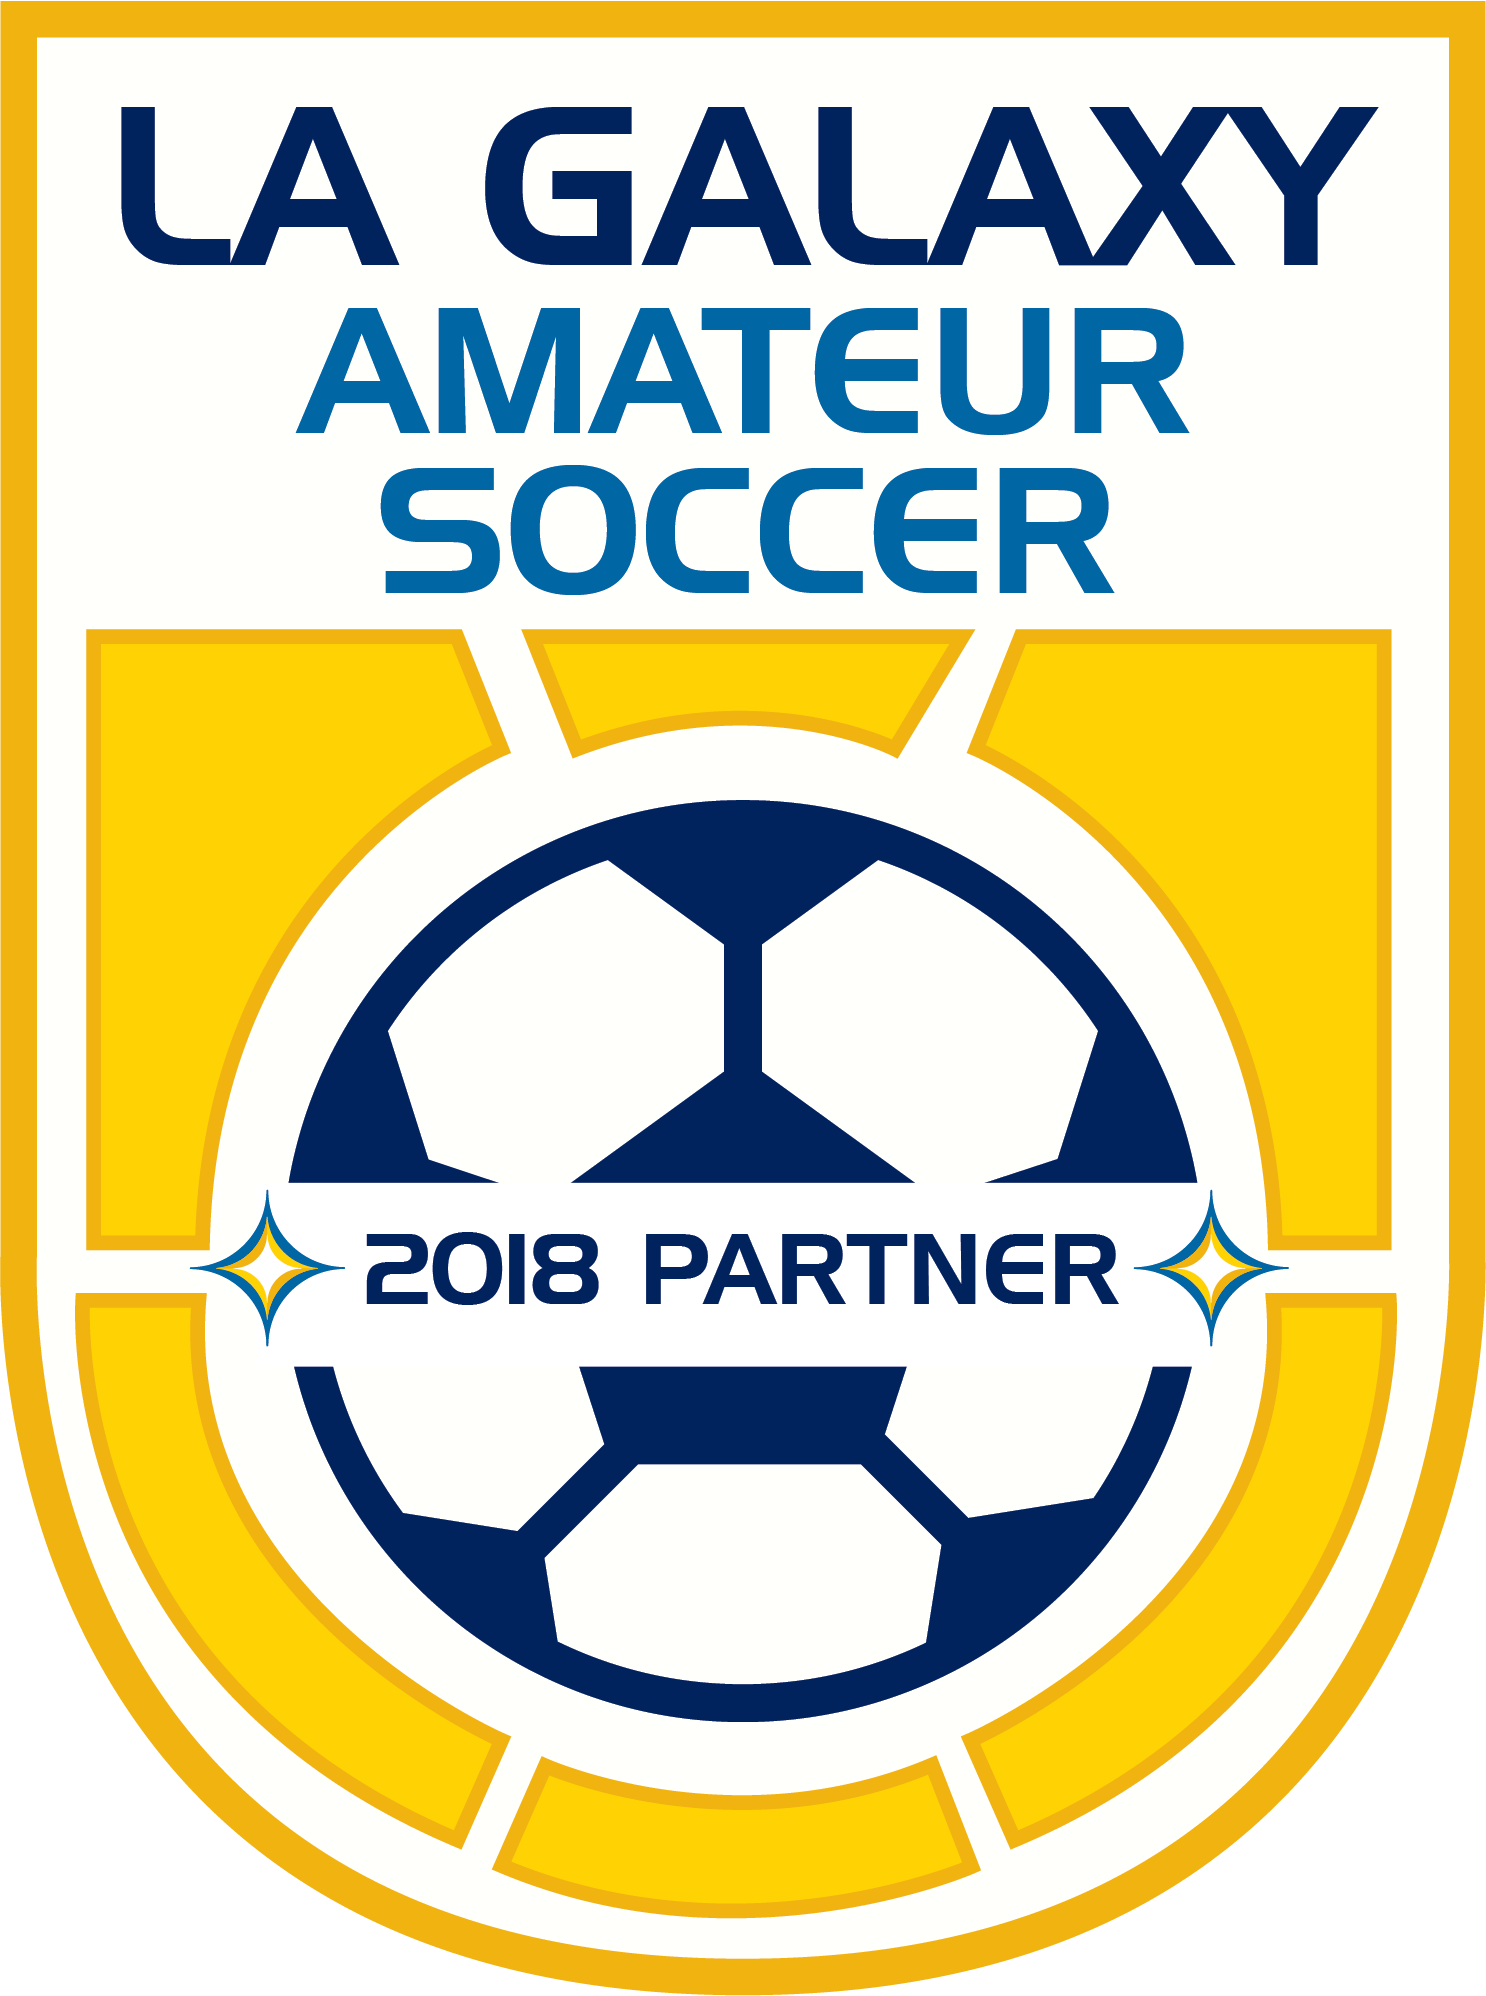 LA Galaxy Amateur